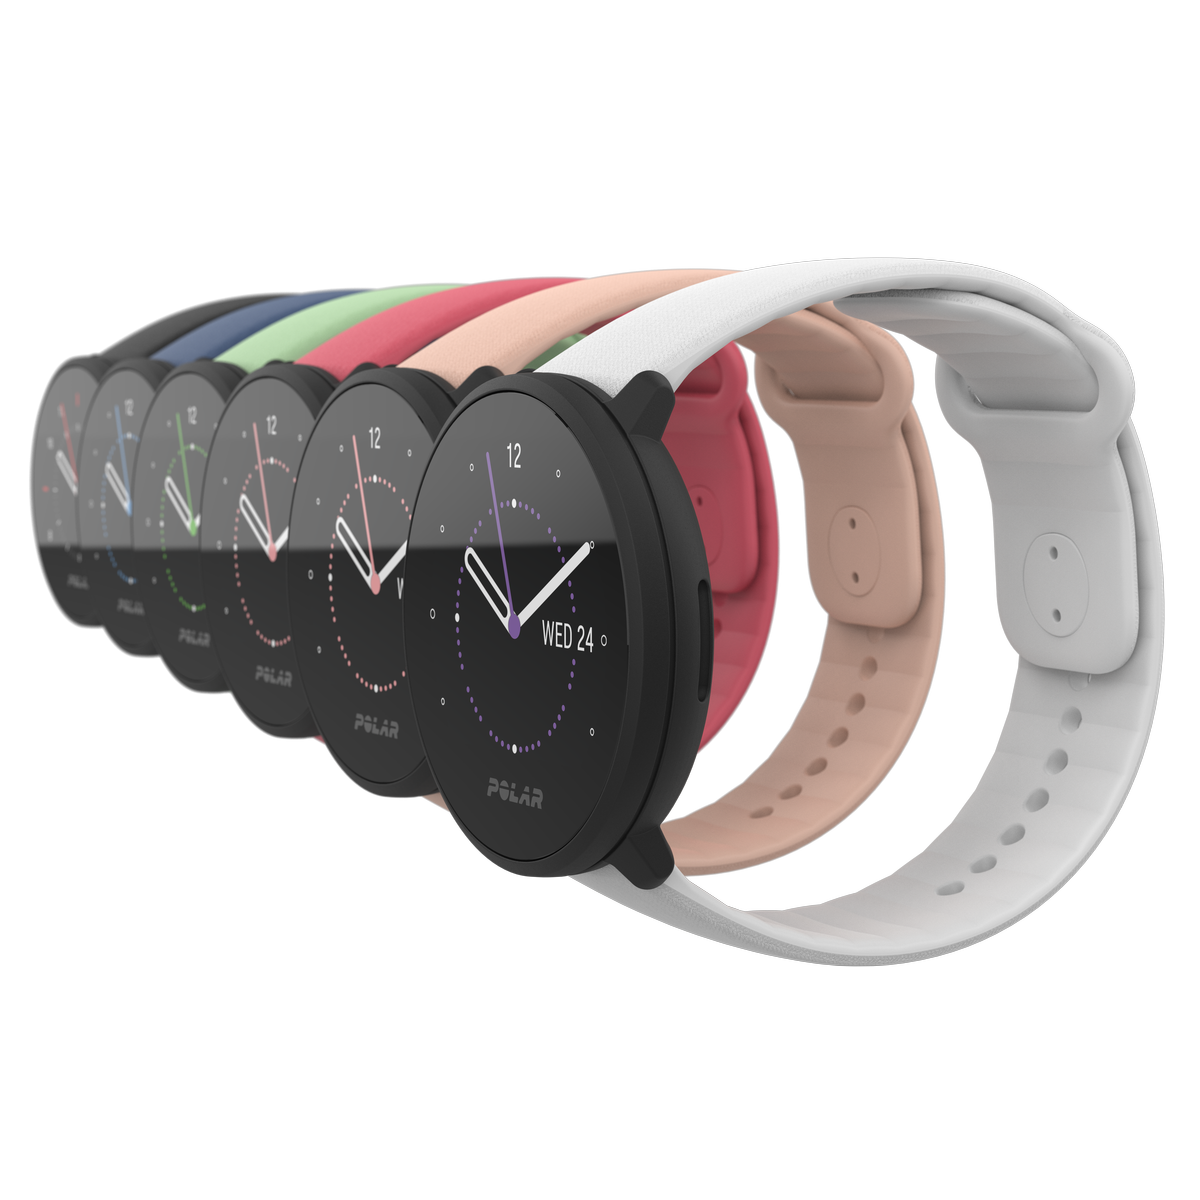 Real time training stats and insights into heart rate, calories burned and strain on the body are provided to users / Polar Global